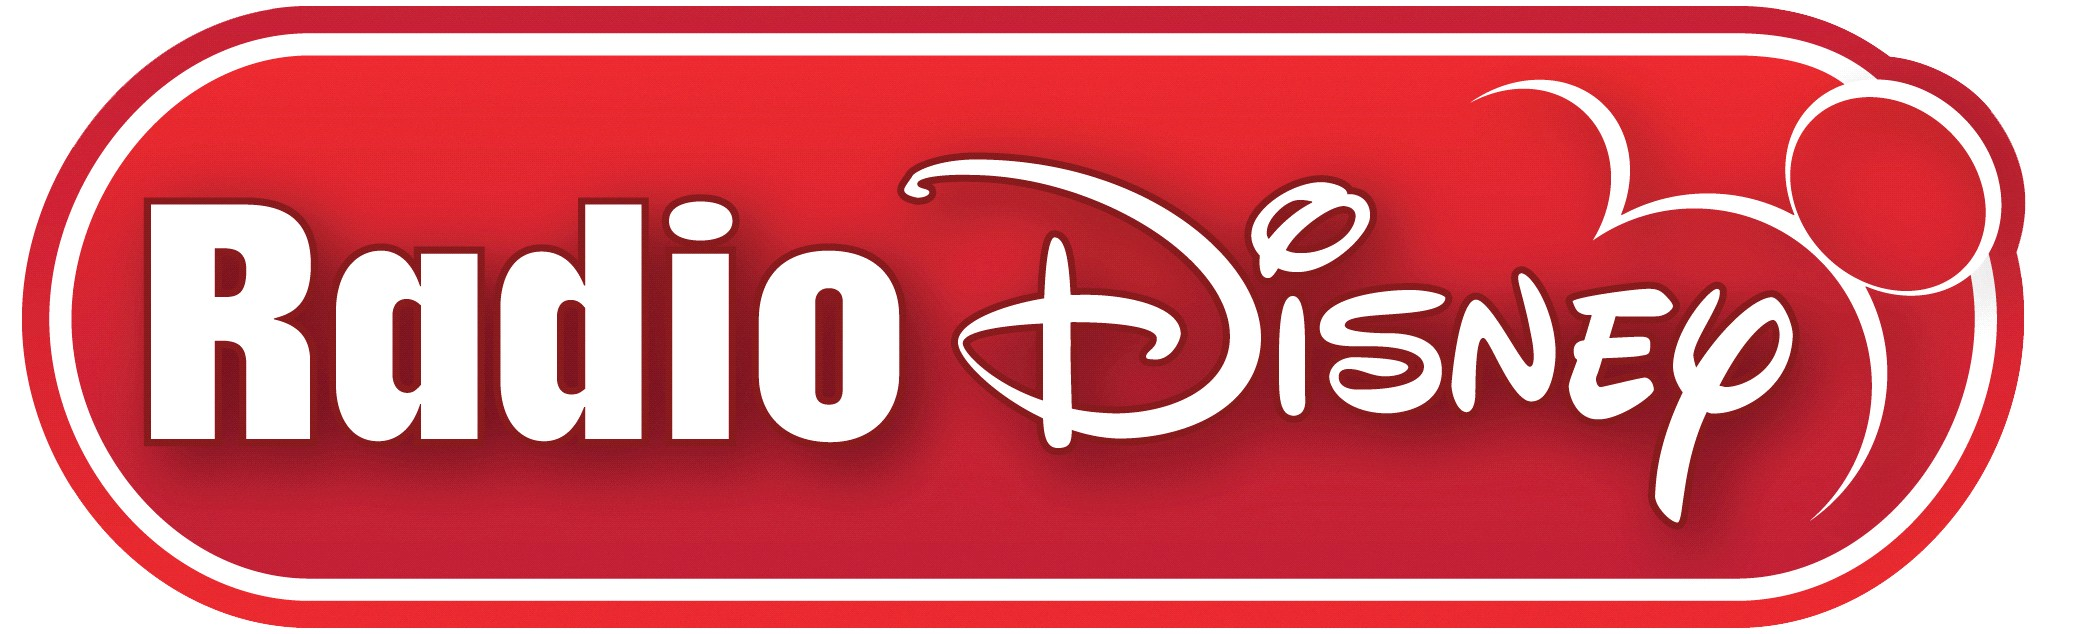 Disney Radio Interviews Subject Matter Expert Dr. Trevicia Williams